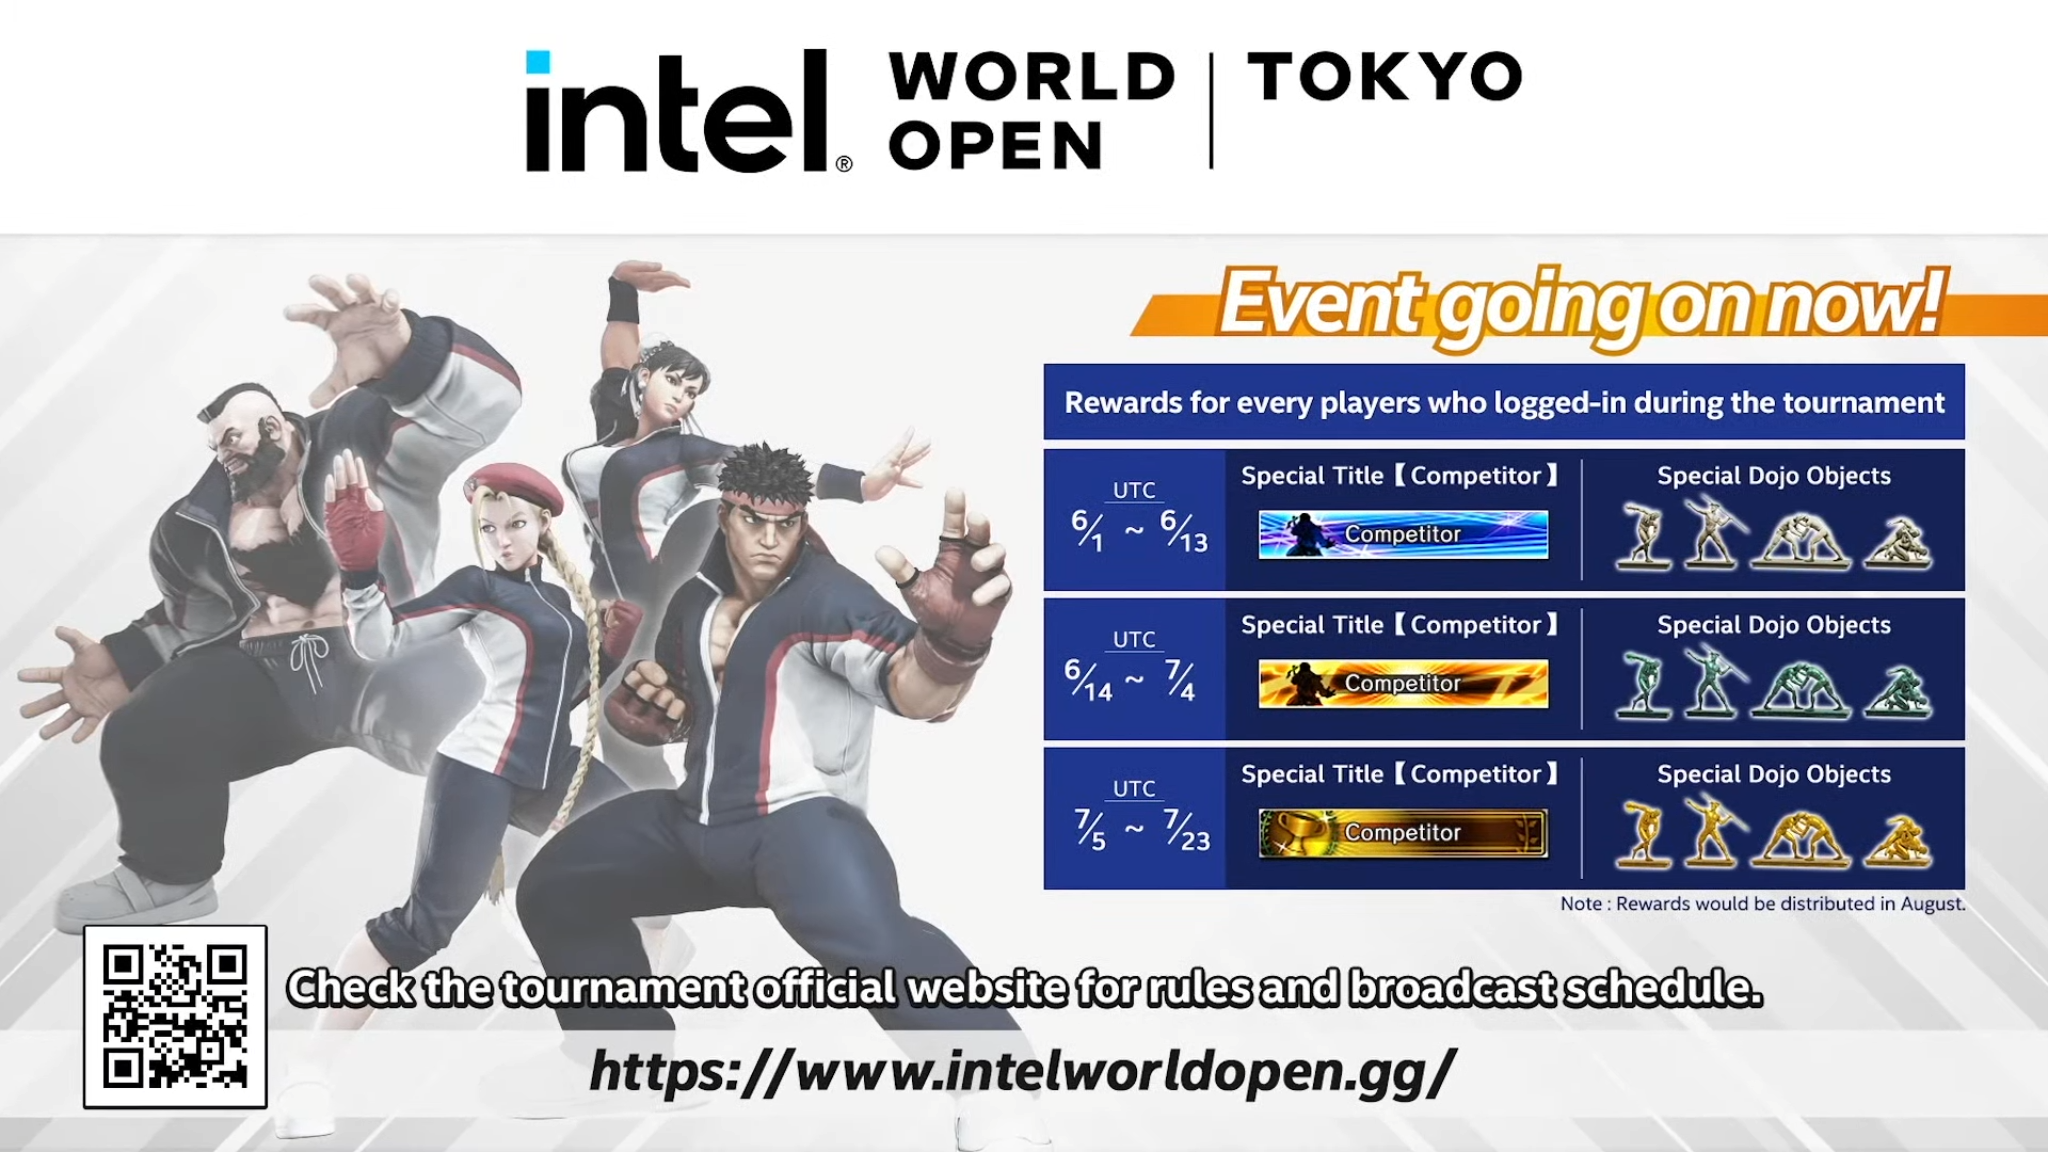 Intel World Open Tokyo Street Fighter in-game items